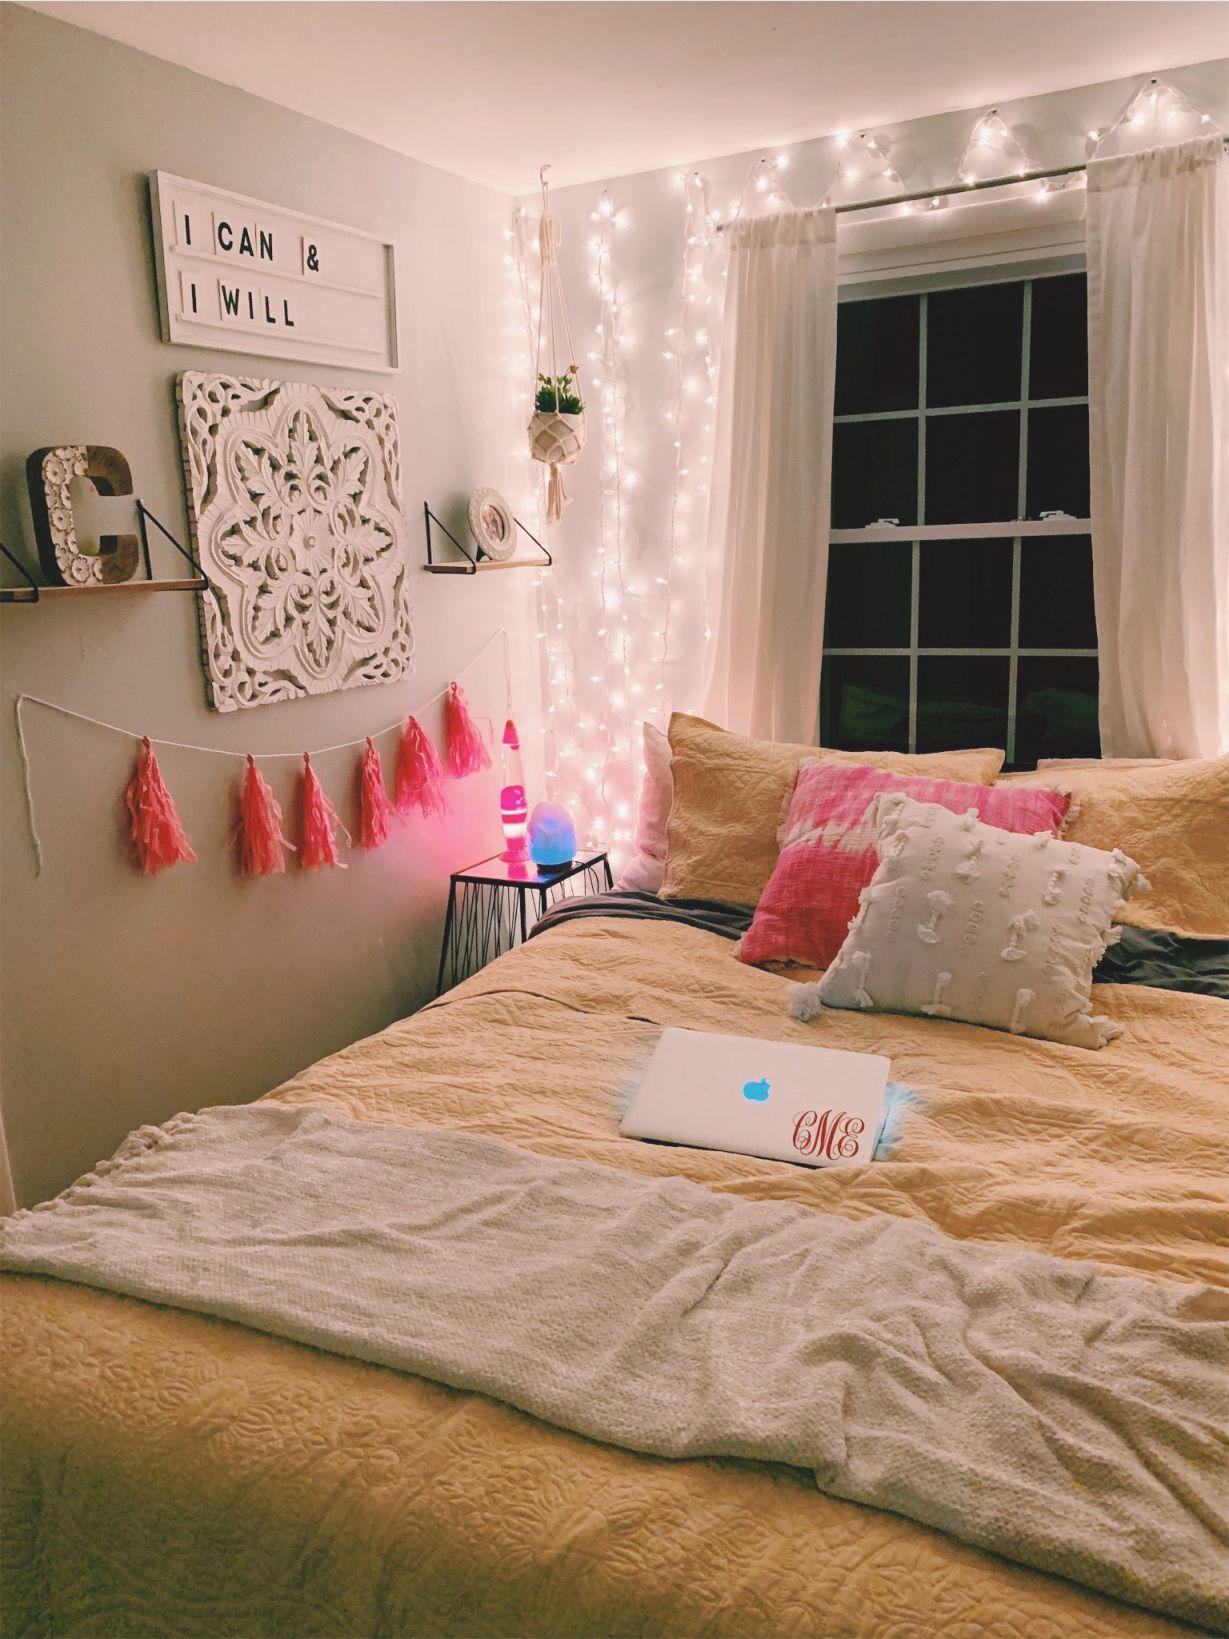 Vsco #bedroom | Room Decor, Room Inspiration, Cute Room Decor pertaining to Awesome Teen Bedroom Decorating Ideas